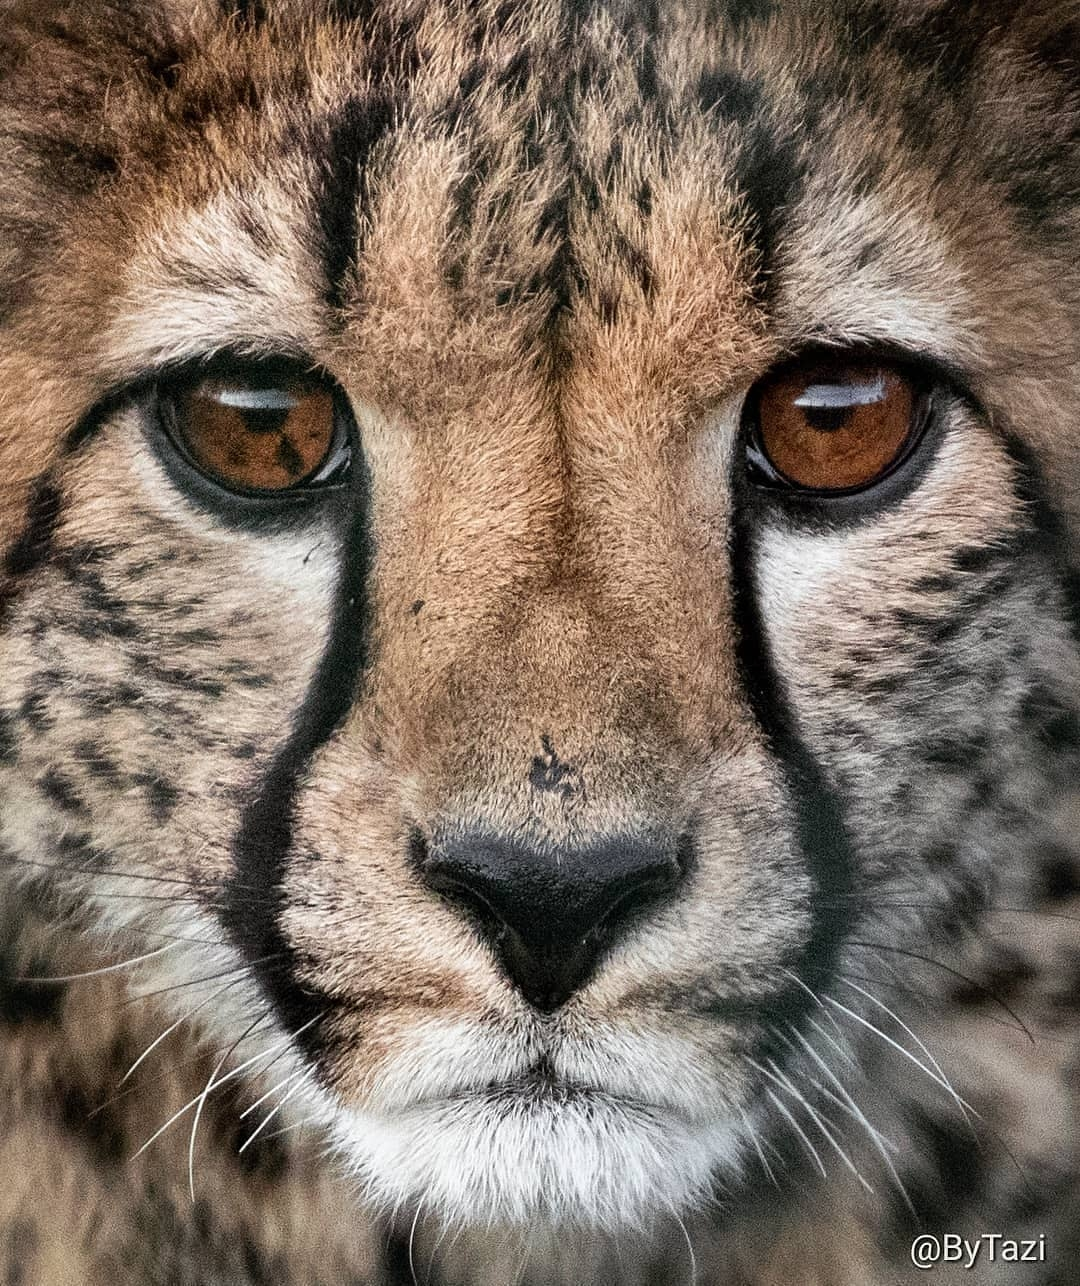 """""""This photo is special to me because 1) I love close ups 2) I love those eyes 3) it is cheetah Tazi, who was named after me. 😊 That makes her and every photo I have of her very special and precious to me... �💕"""" - Tazi Brown"""